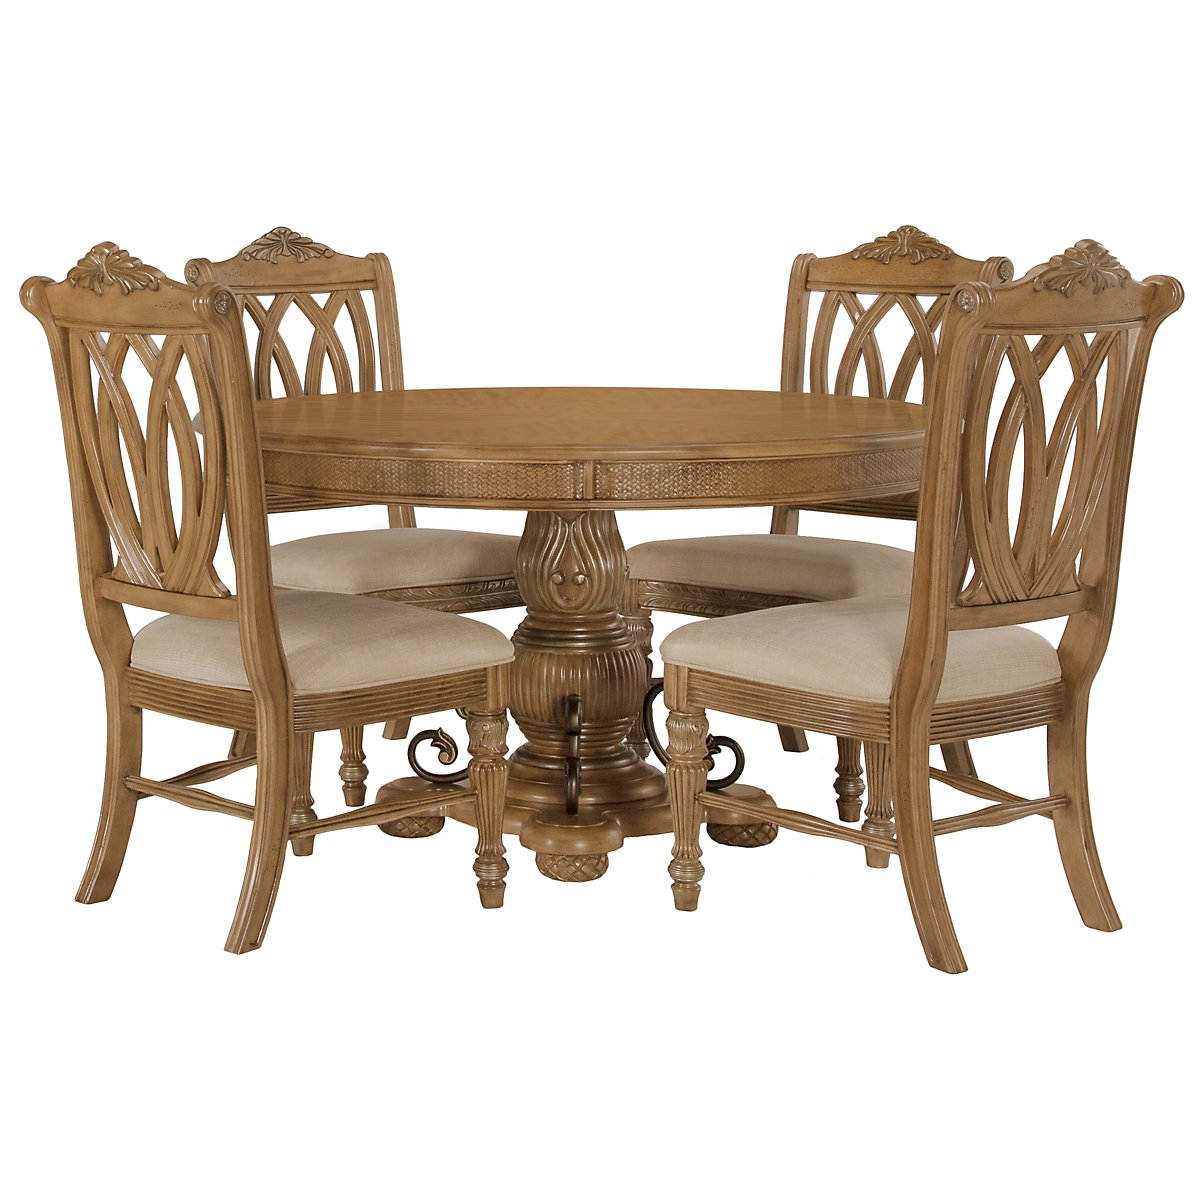 Tradewinds Light Tone Round Table & 4 Wood Chairs